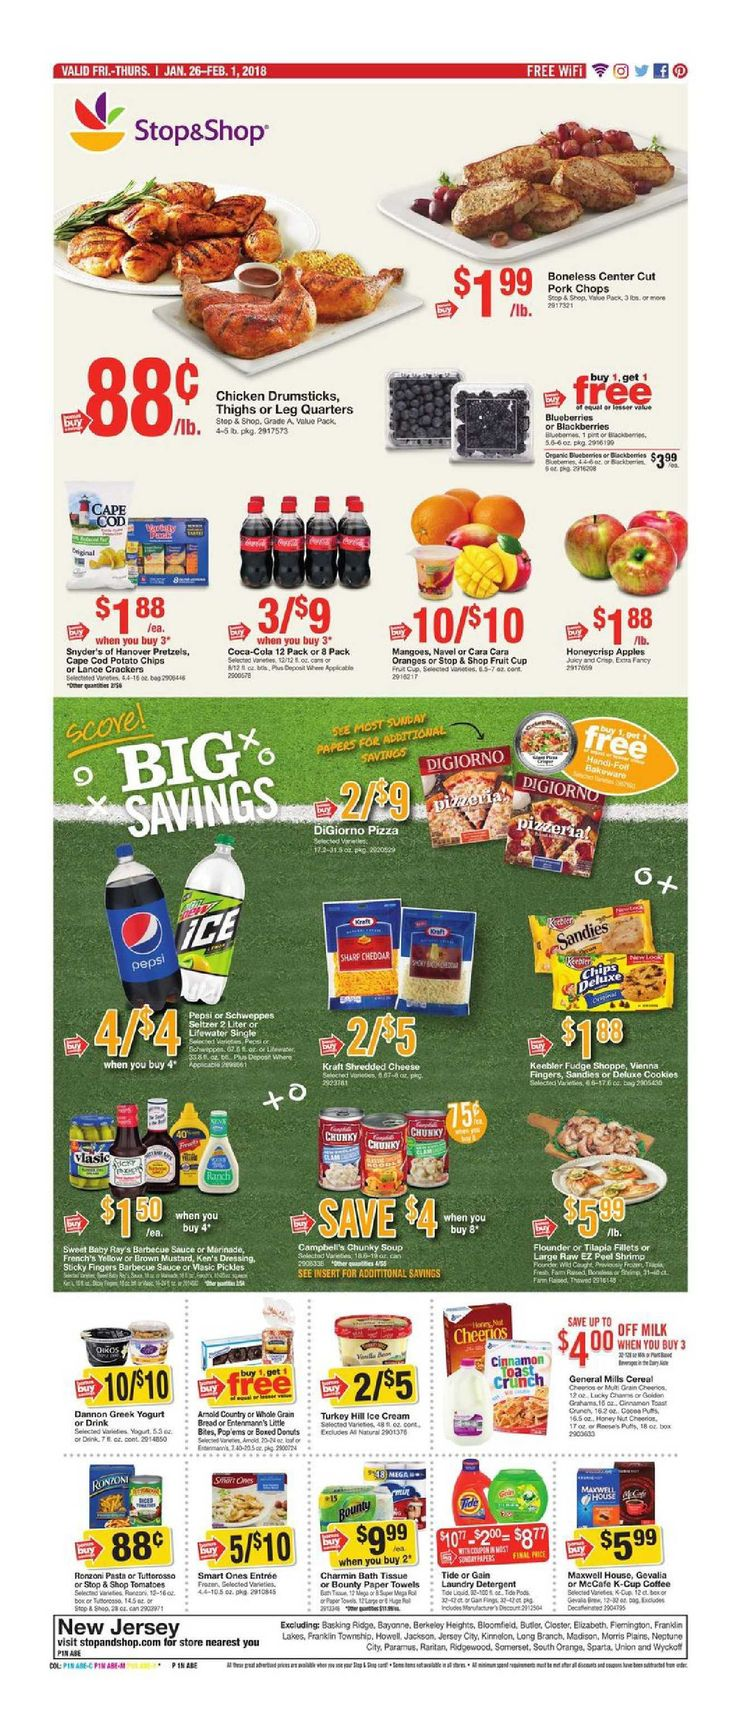 Stop and Shop Circular January 26 - February 1, 2018 - http://www.olcatalog.com/grocery/stop-and-shop-circular.html